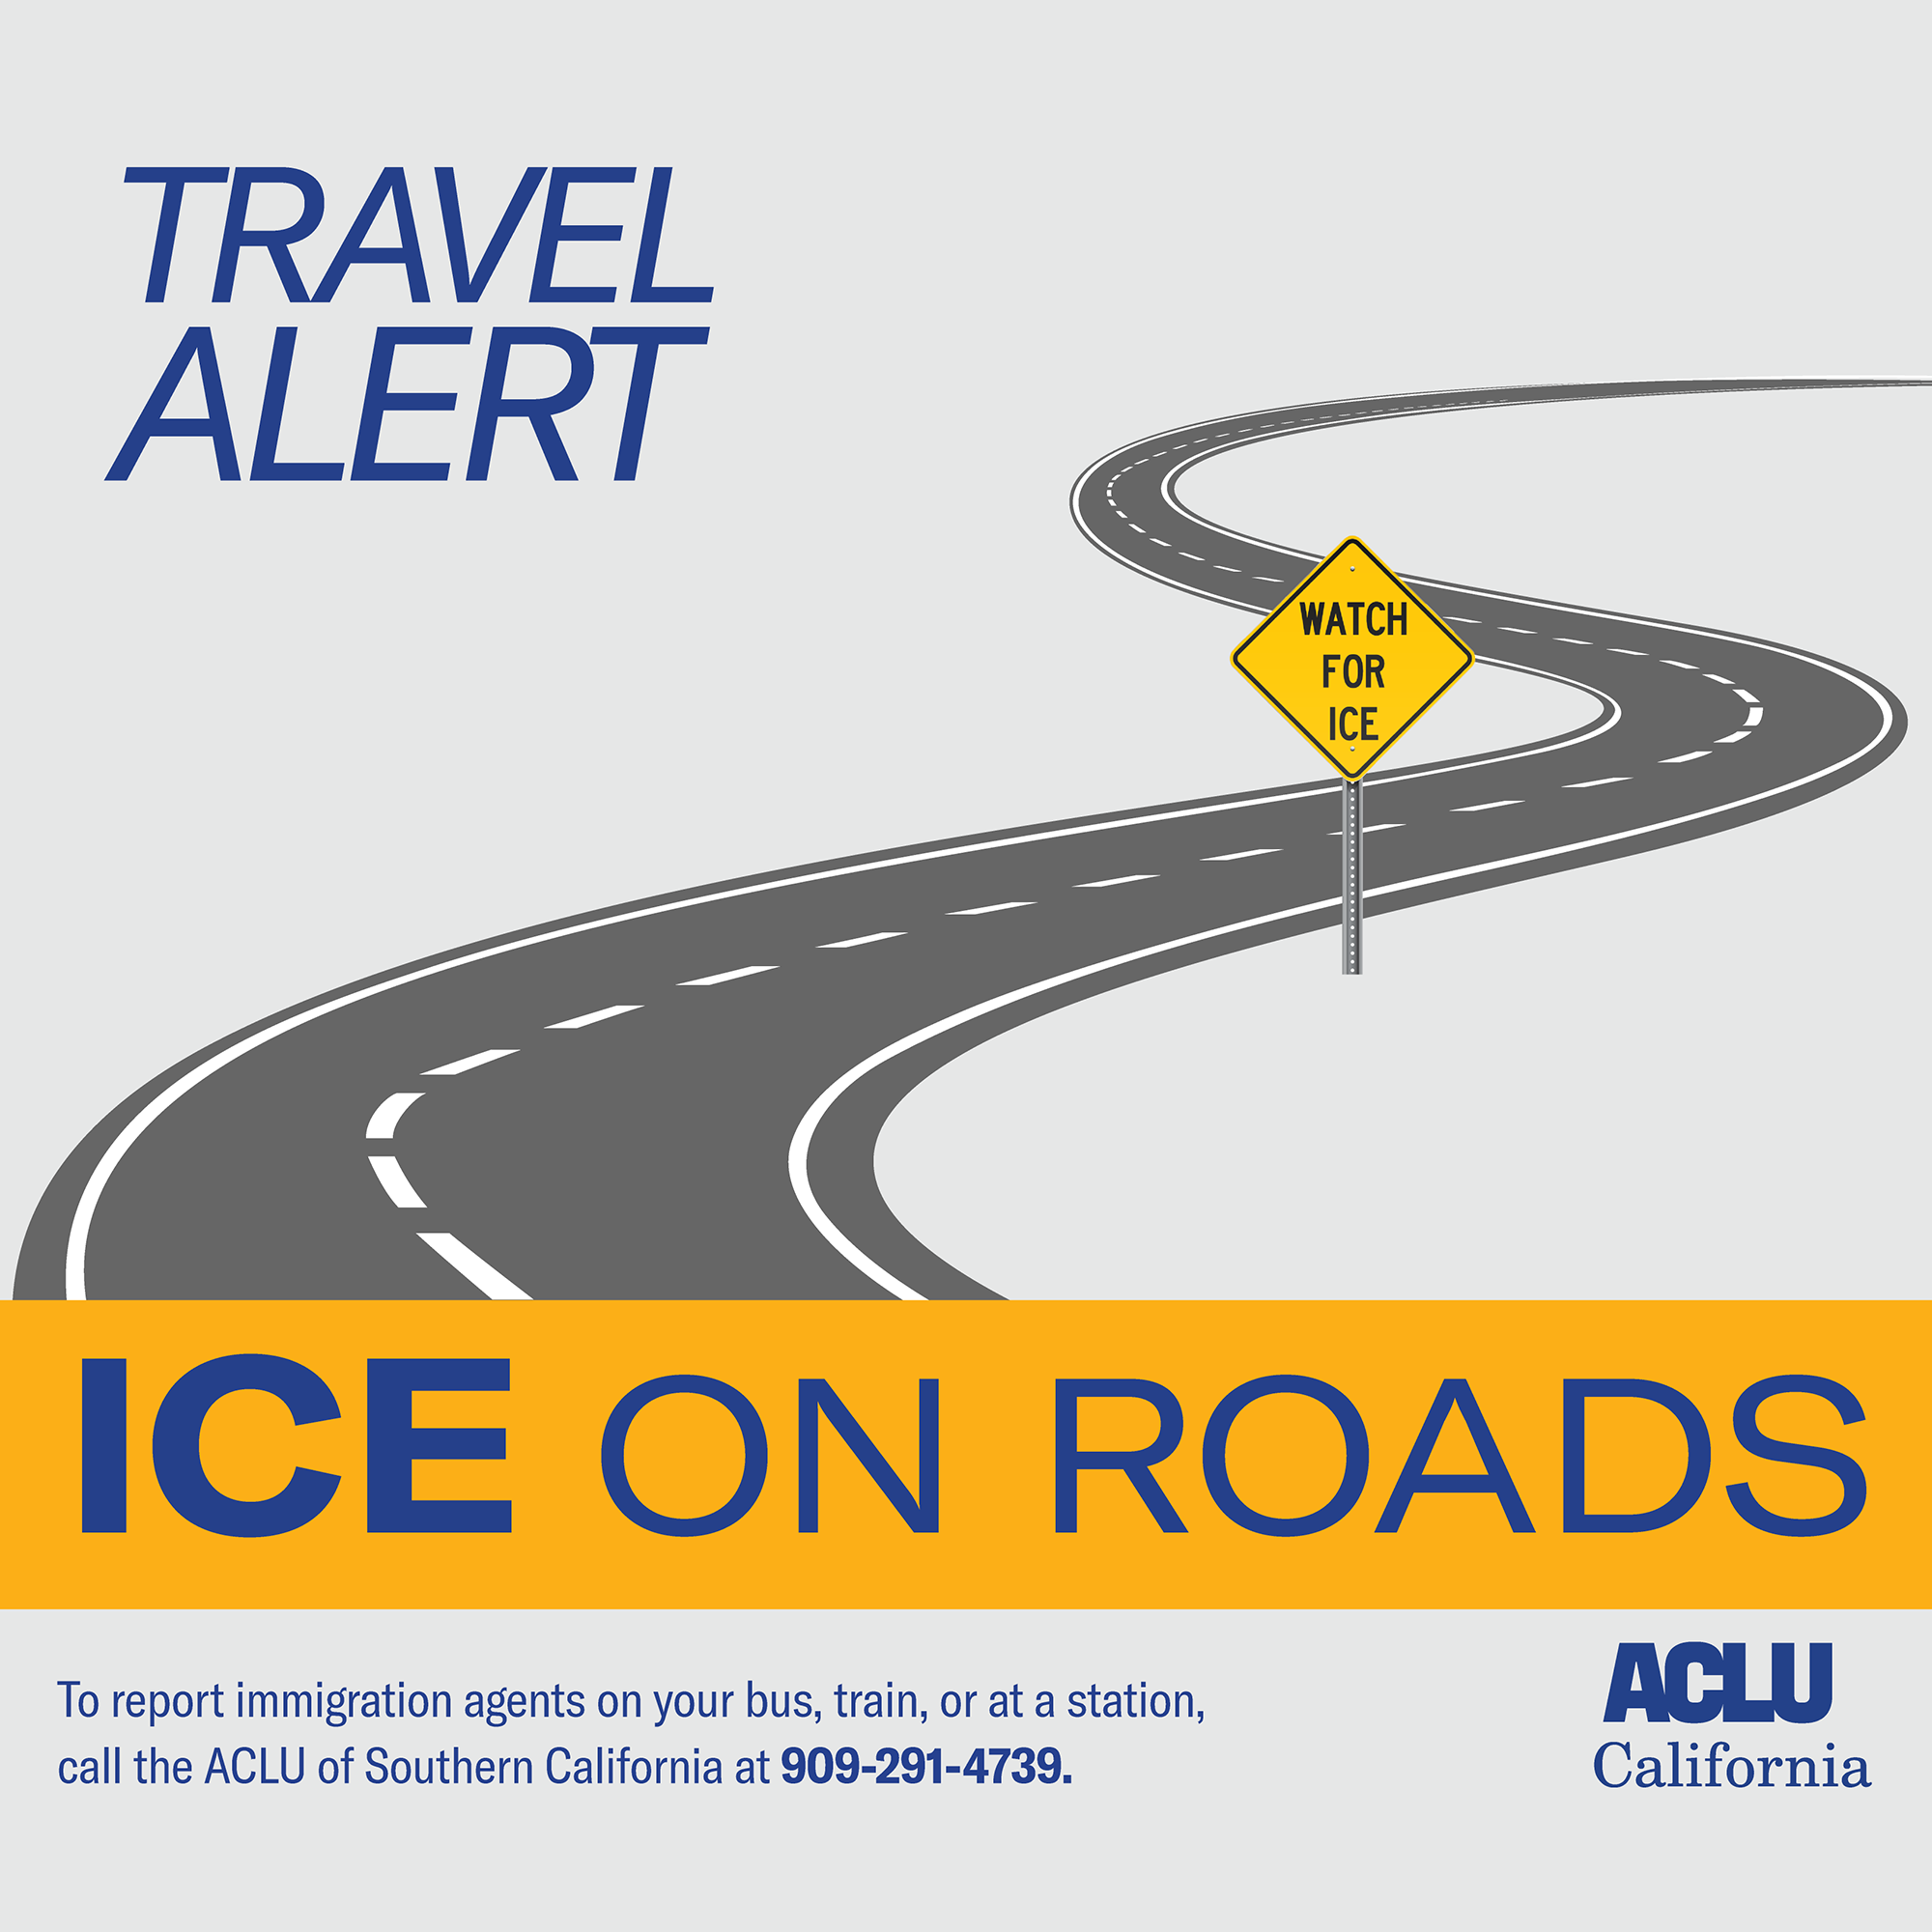 Travel alert: ICE on roads